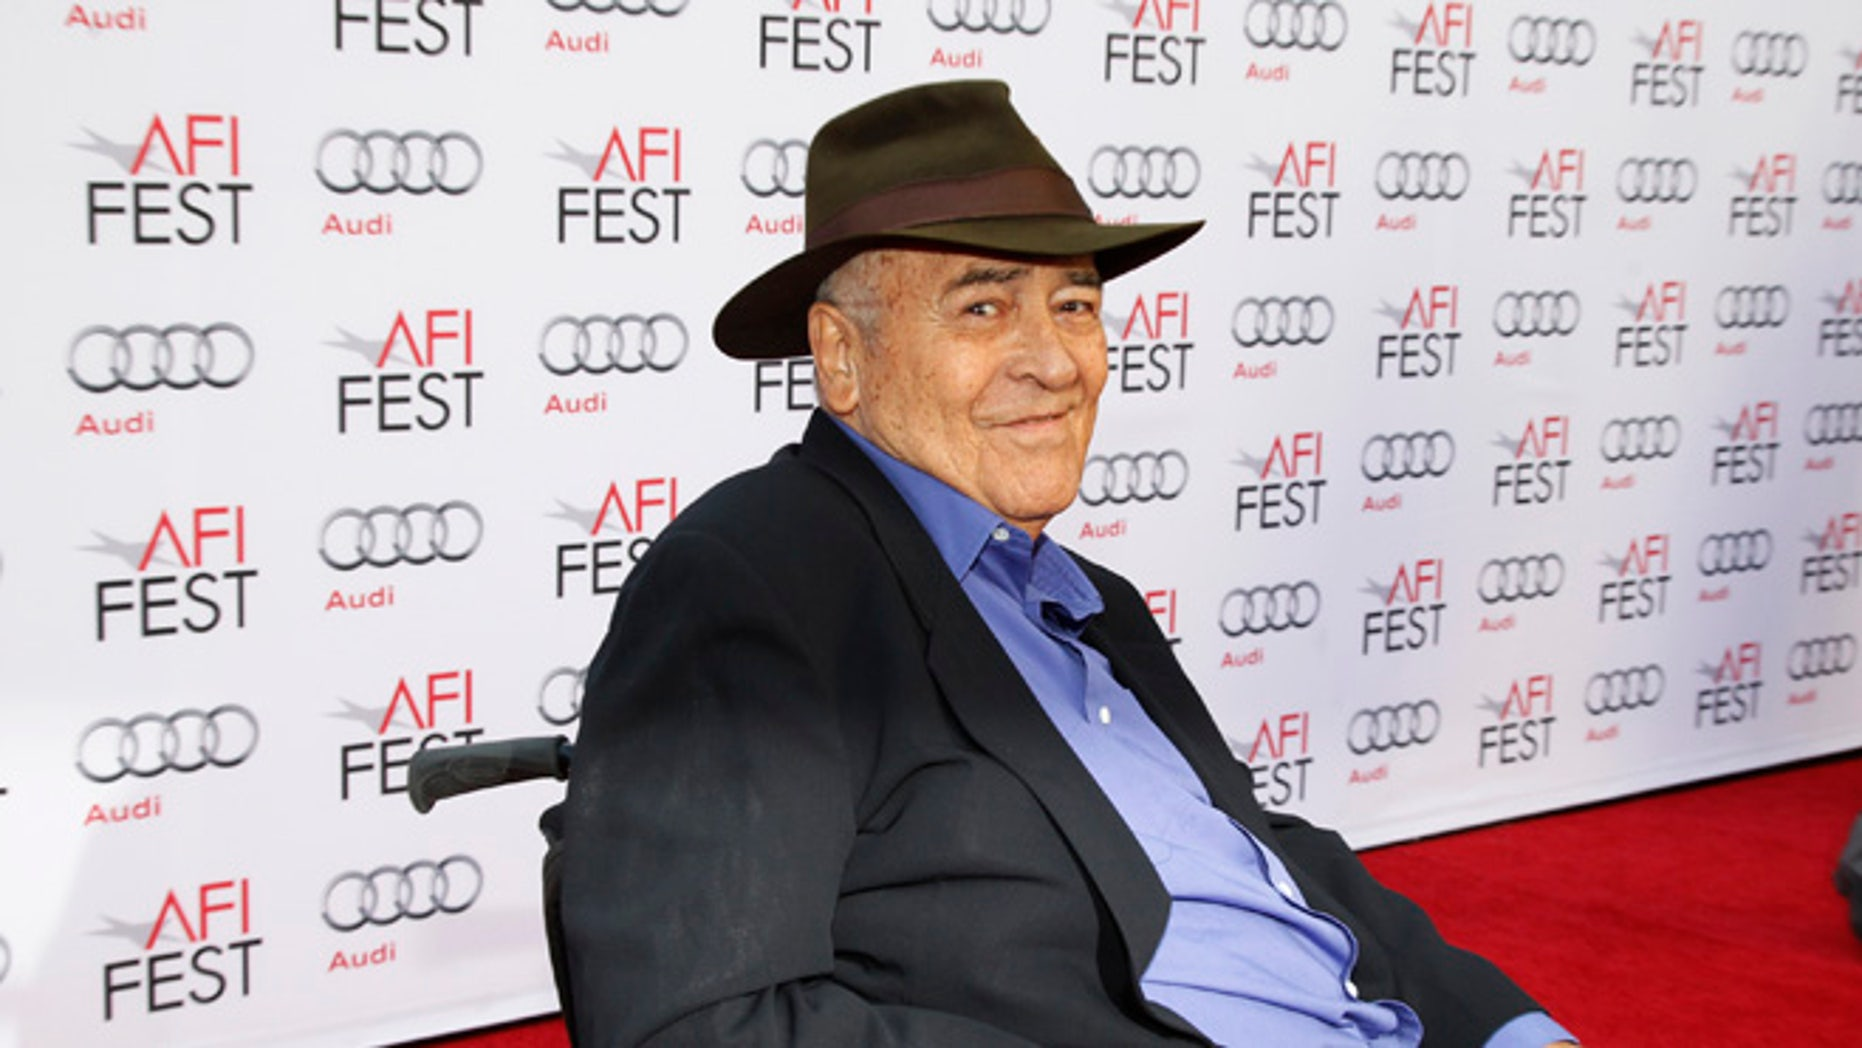 """Italian director Bernardo Bertolucci smiles during an interview as he arrives for a gala screening of his film """"The Last Emperor"""" in 3D at the AFI Fest 2013 in Hollywood, California, November 10, 2013. REUTERS/Fred Prouser (UNITED STATES - Tags: ENTERTAINMENT) - RTX158LK"""